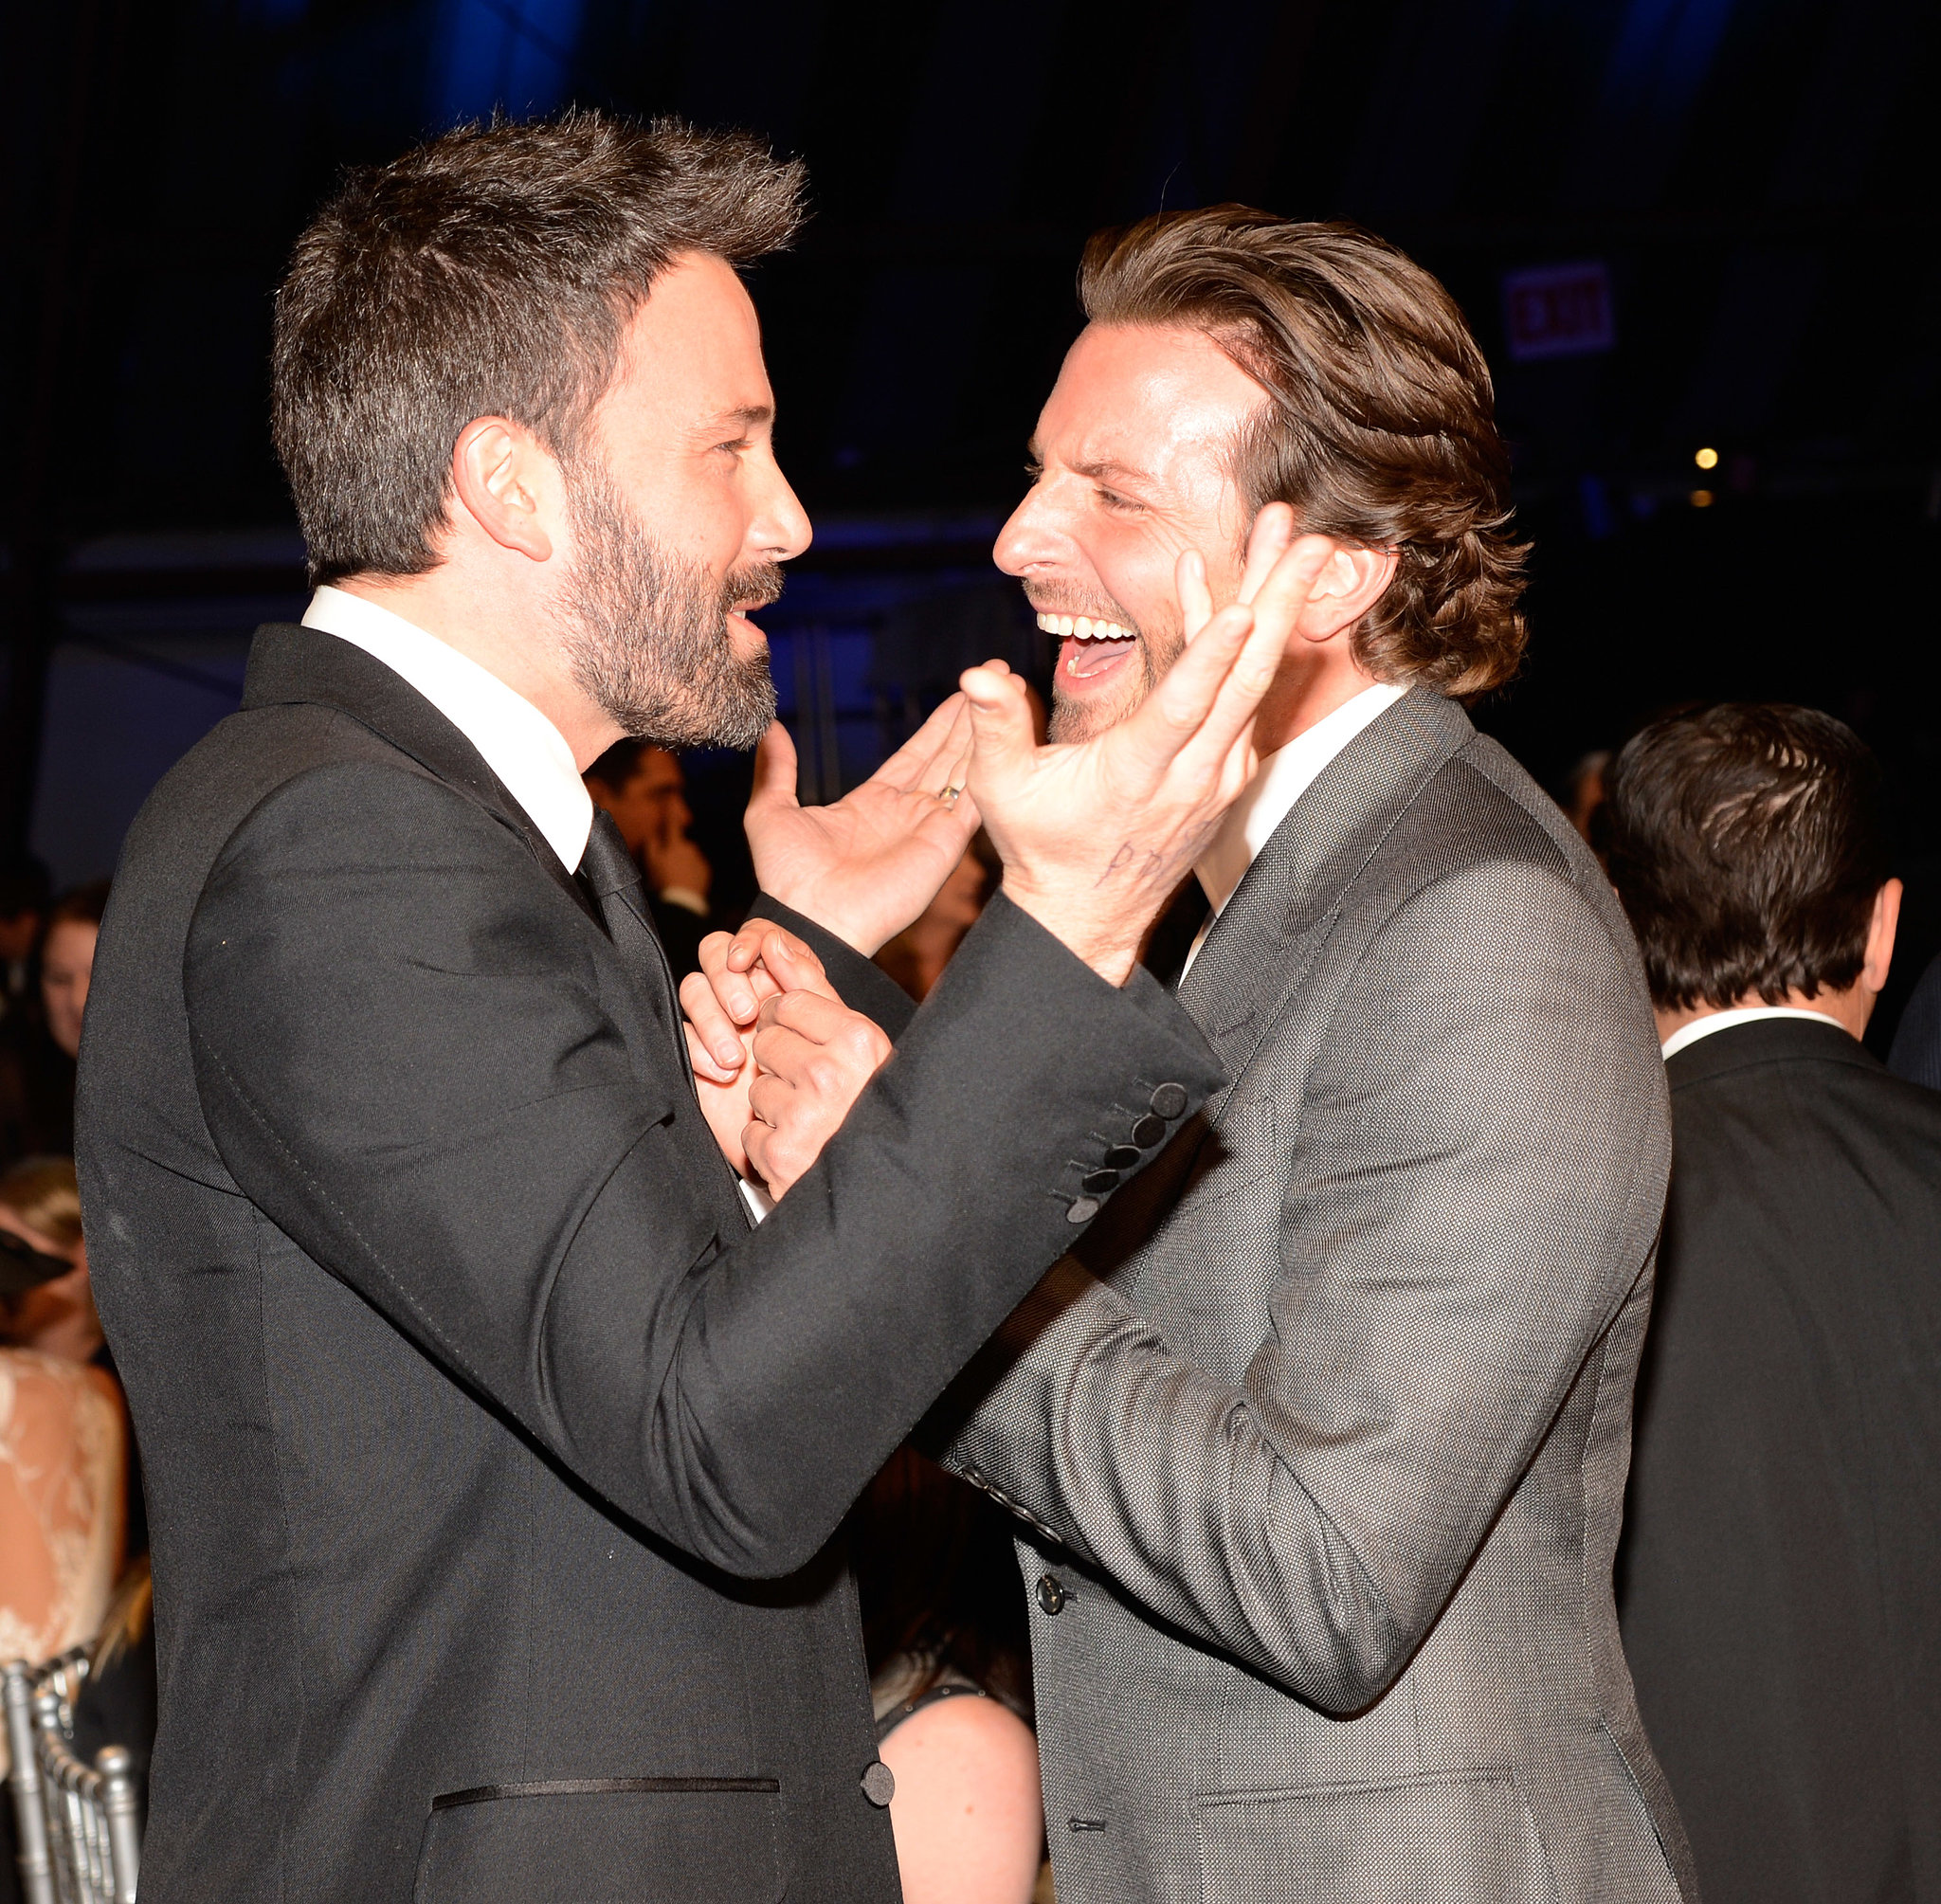 That time at the 2013 awards when we were pretty sure Ben Affleck and Bradley Cooper had serious man crushes on each other.